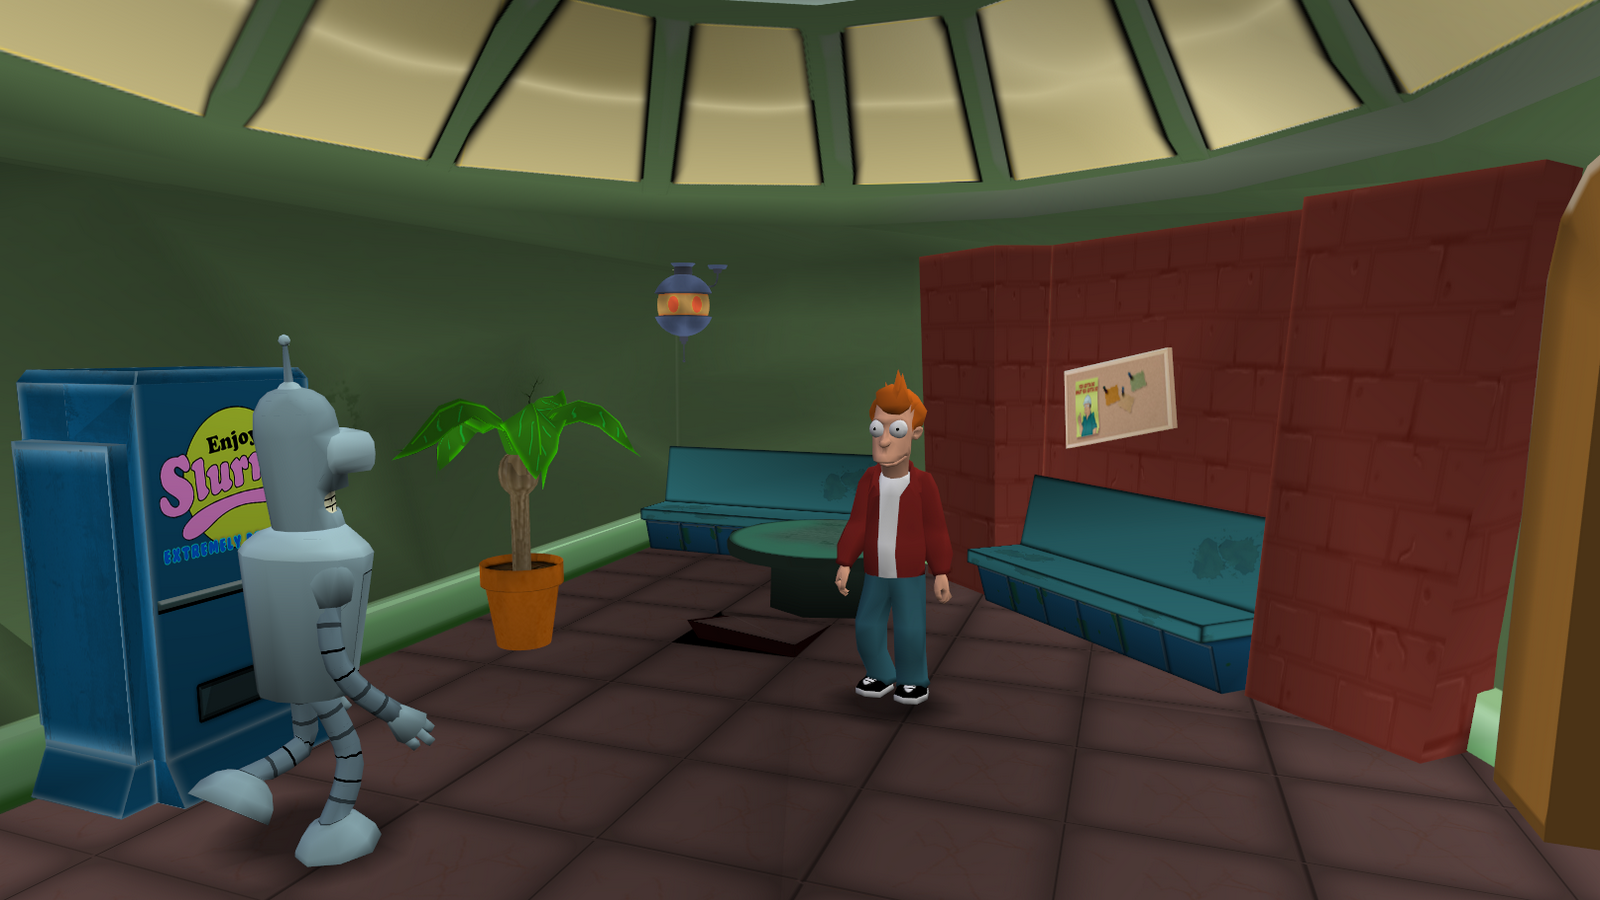 Fry standing inside the Planet Express building.